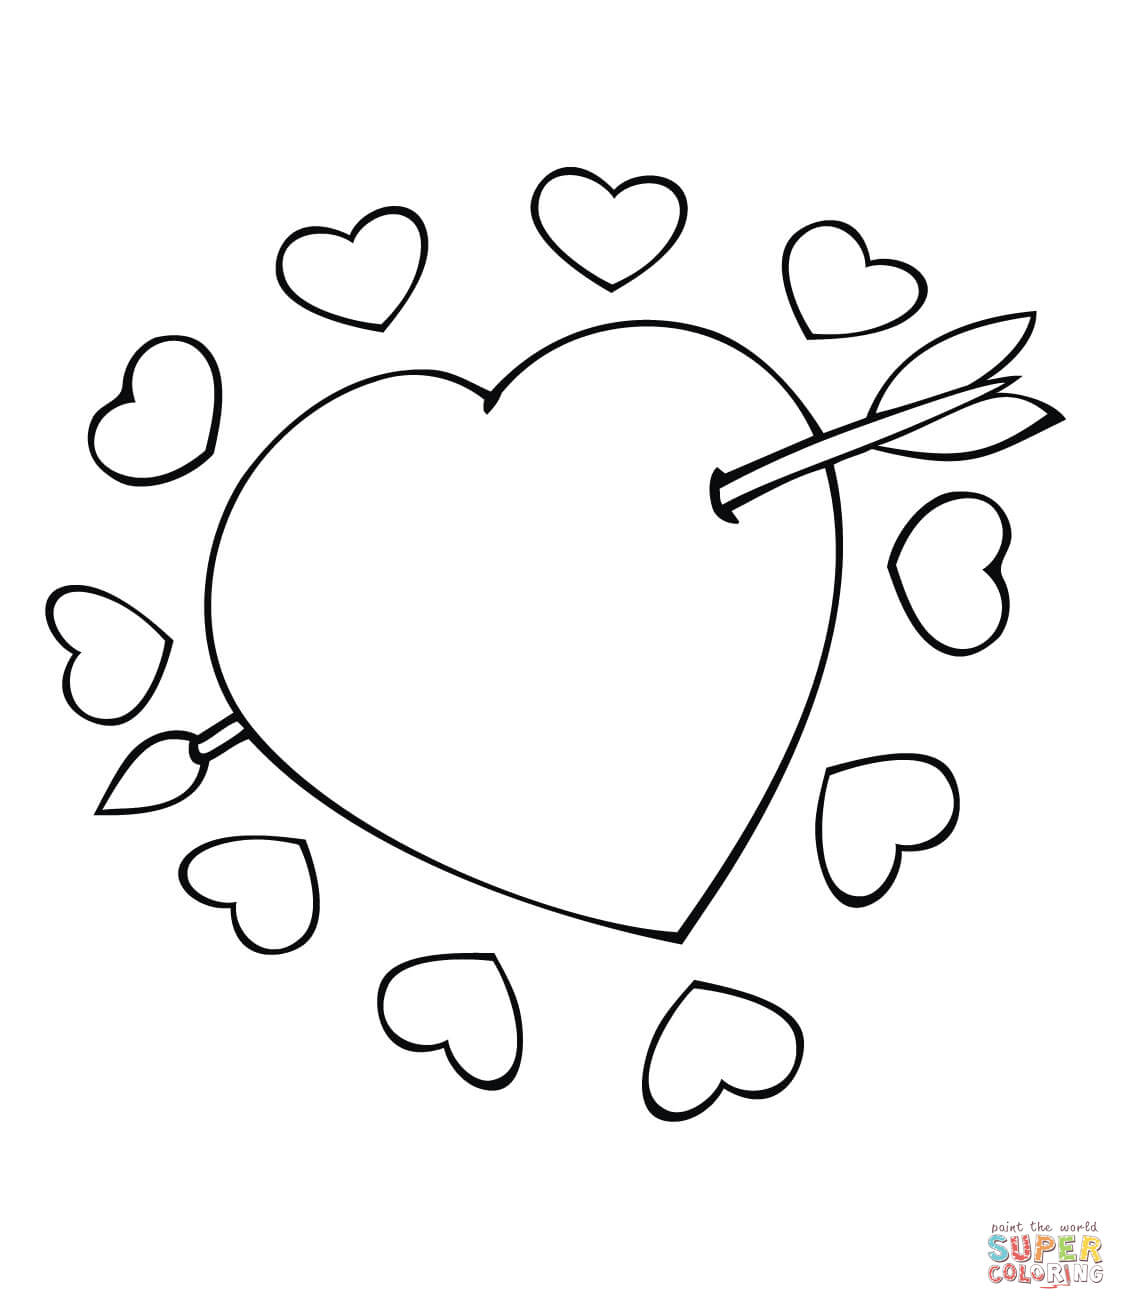 Cupid Arrow Through The Heart Coloring Page | Free Printable - Free Printable Pictures Of Cupid